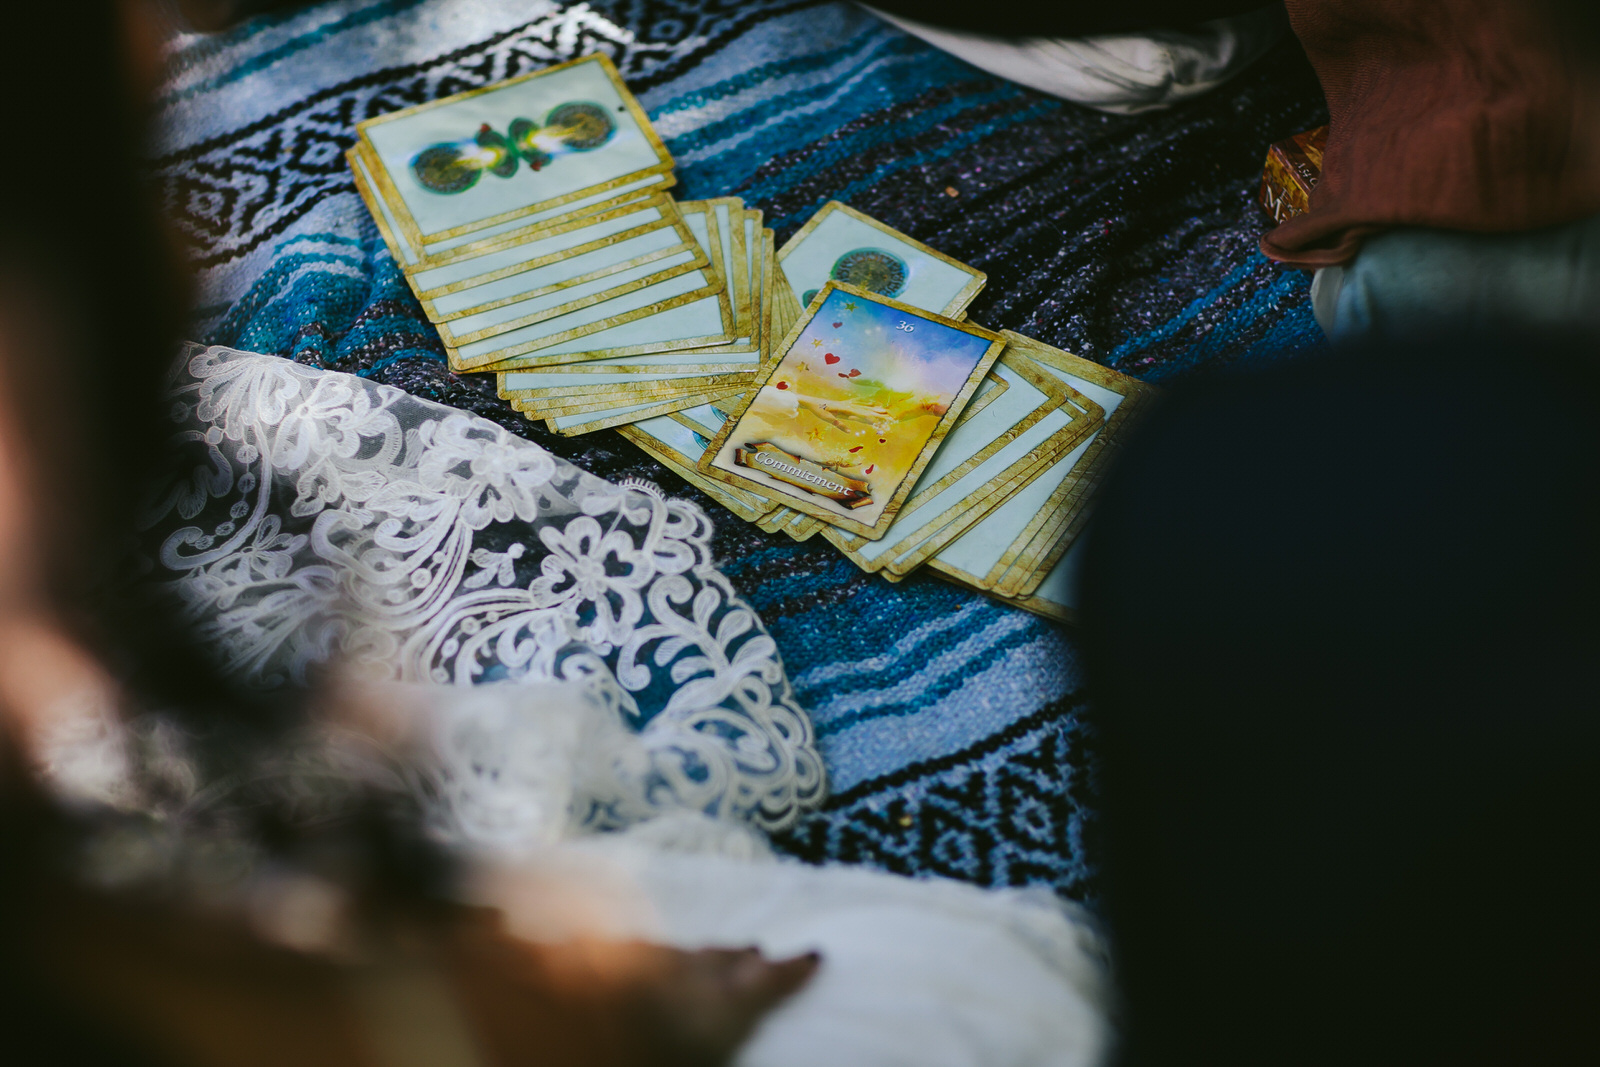 tarot-cards-wedding-guests-psychic-readings